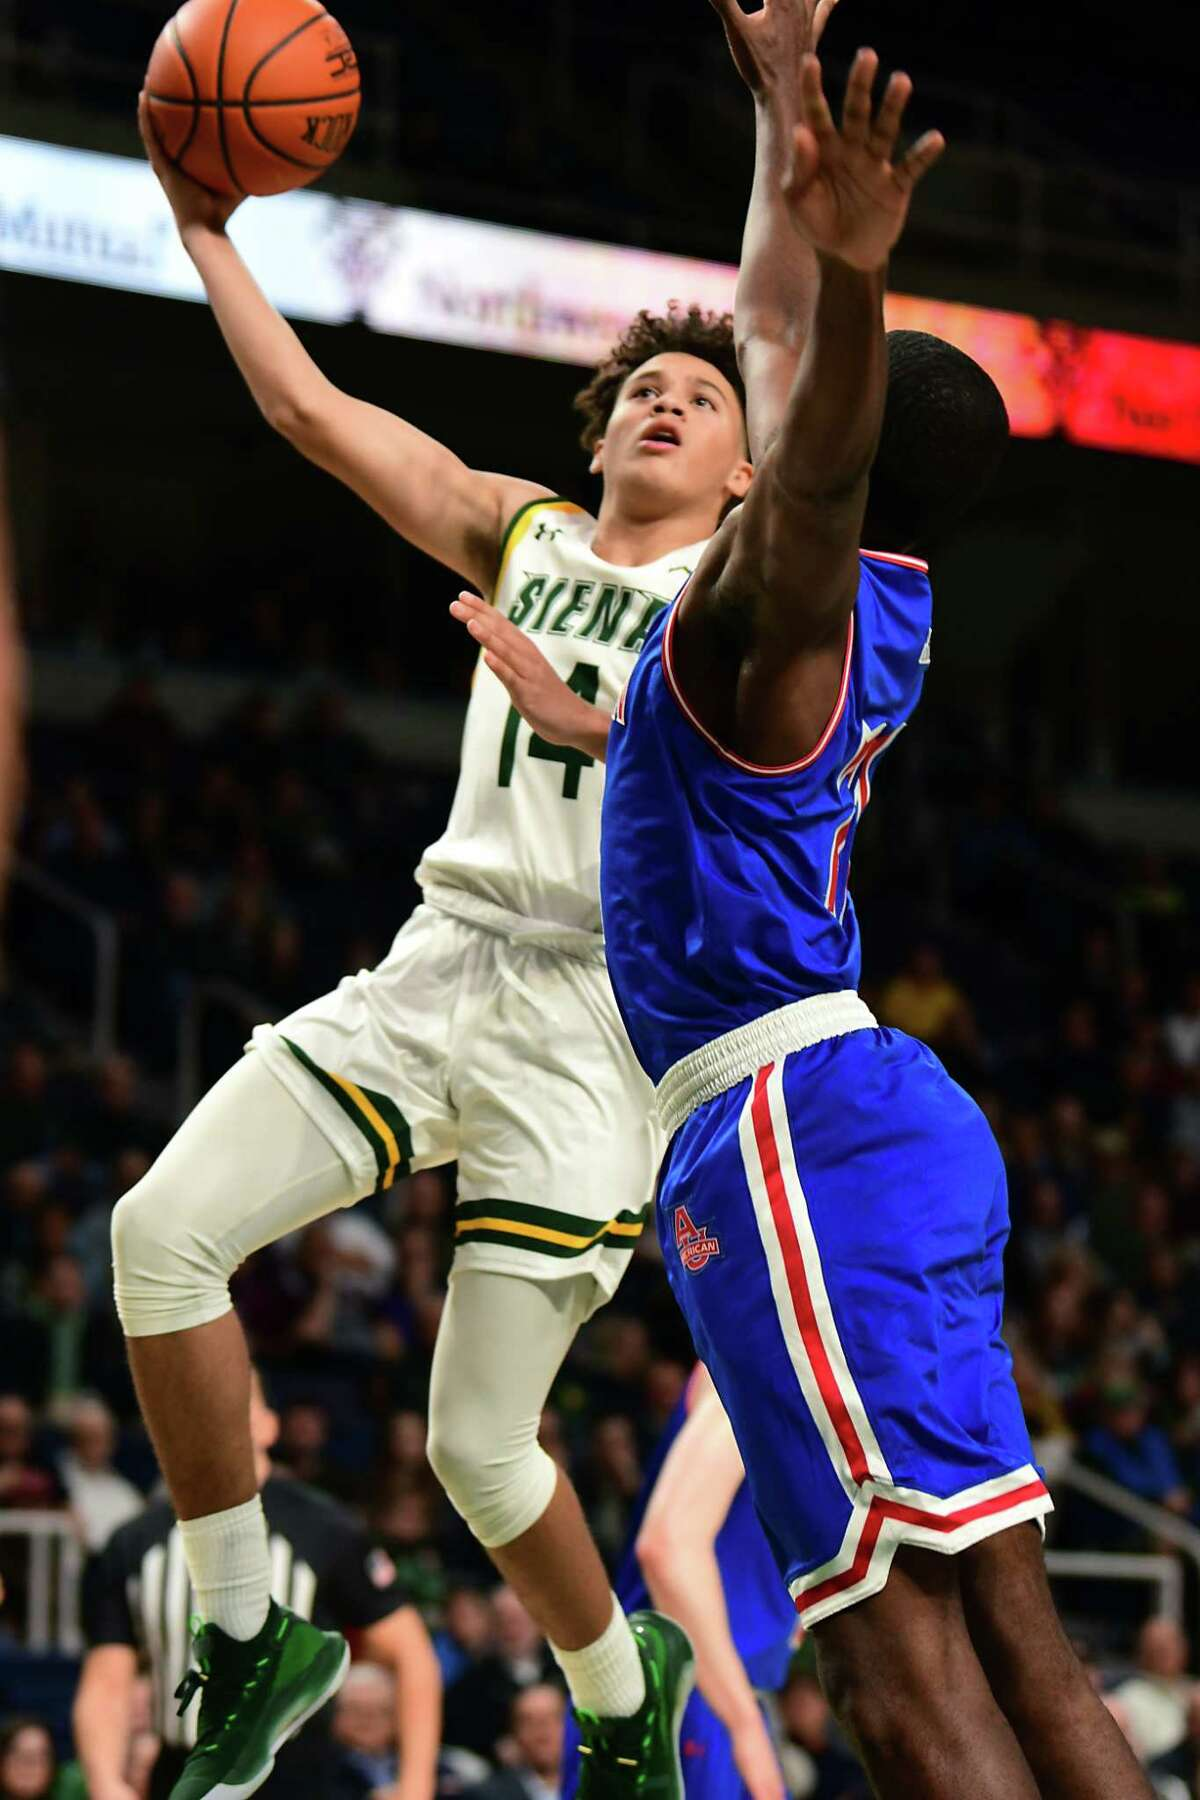 Siena's Jordan King takes a shot during a basketball game against American University at the Times Union Center on Tuesday, Nov. 5, 2019 in Albany, N.Y. (Lori Van Buren/Times Union)